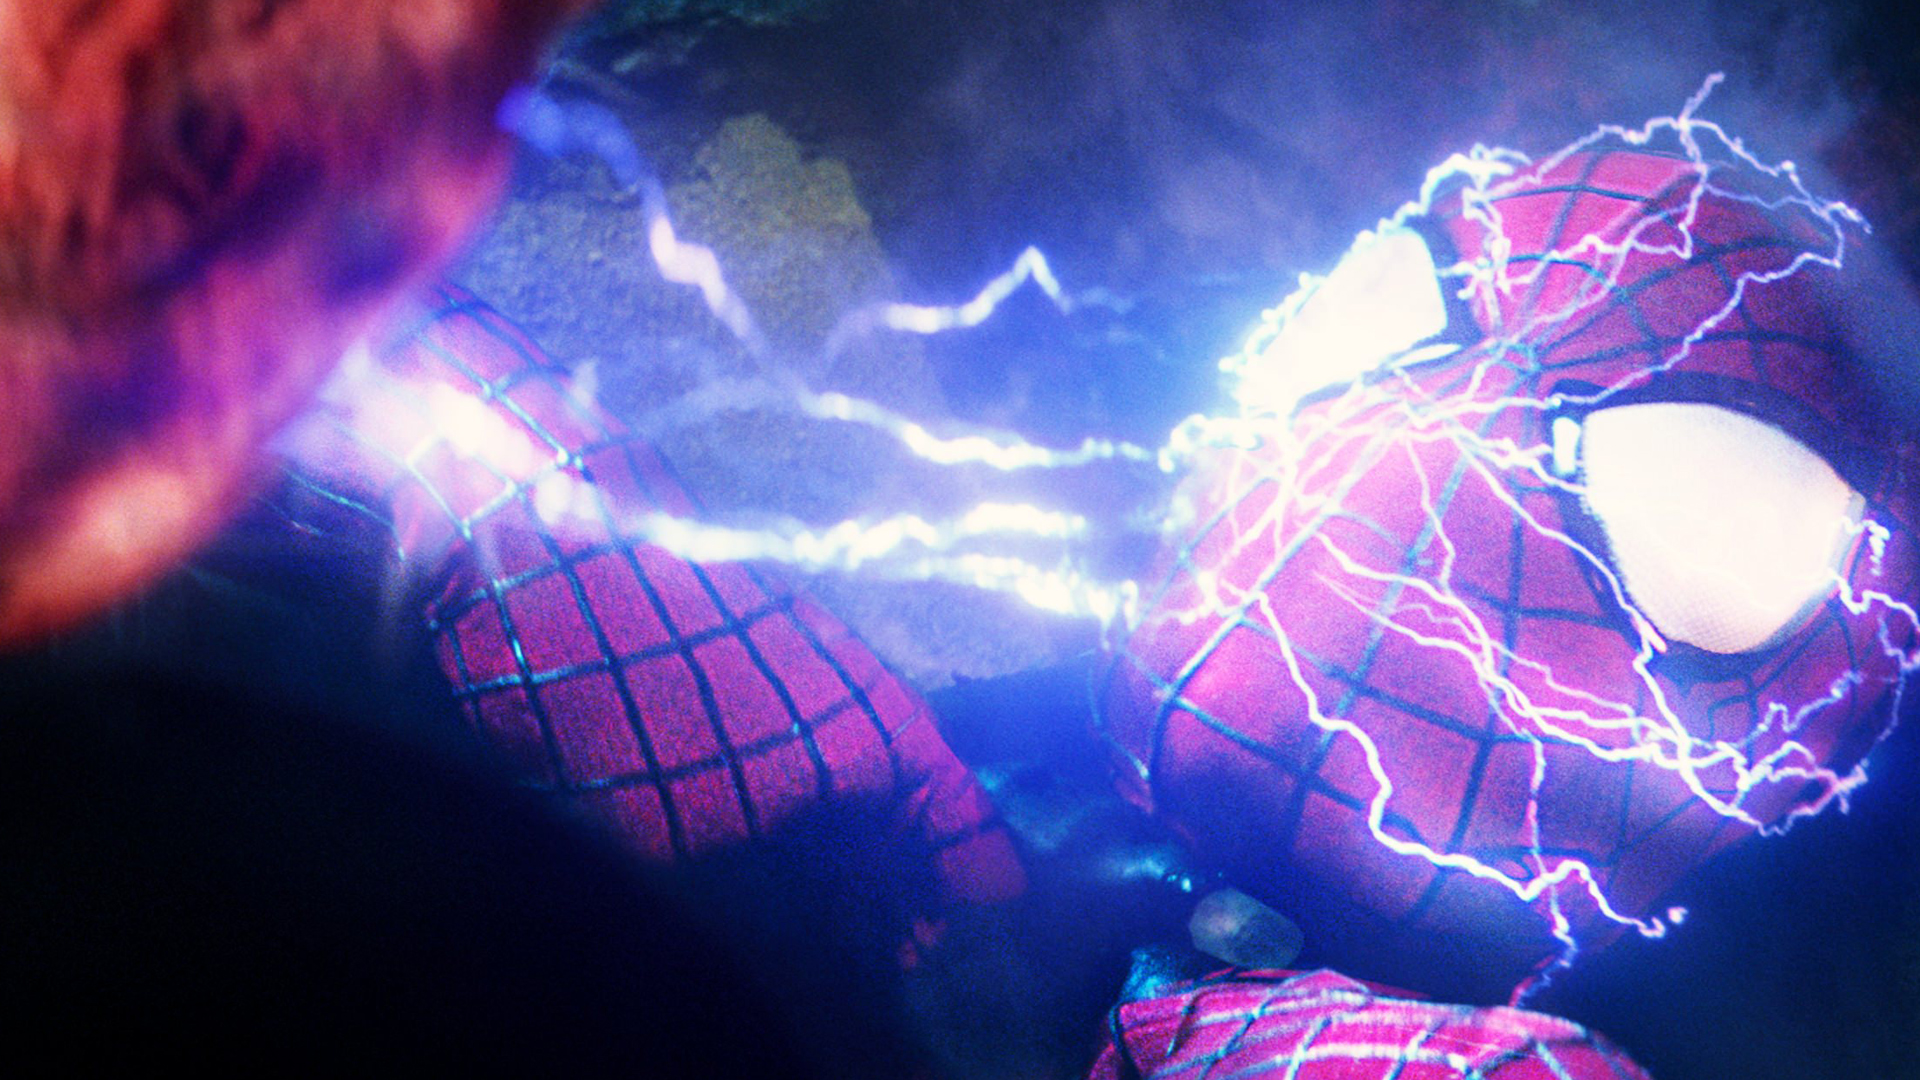 electro vs the amazing spider man 2 movie hd 1920x1080 1080p wallpaper 1920x1080